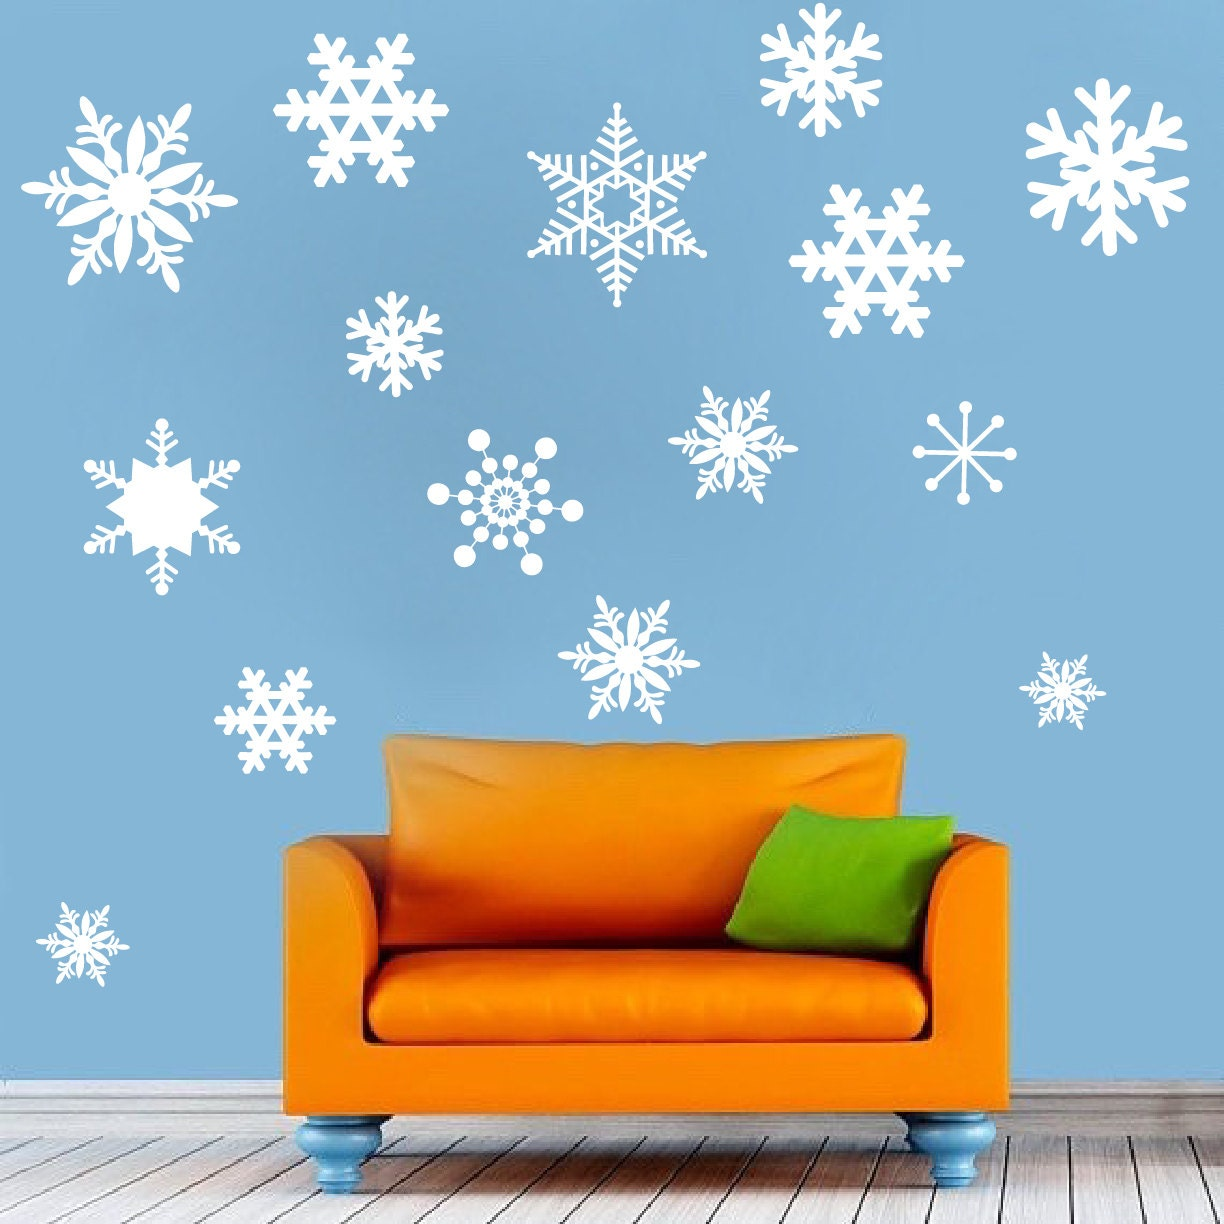 snow for window decals snow wall stickers snowflake stickers snow wallpaper snow self adhesive. Black Bedroom Furniture Sets. Home Design Ideas